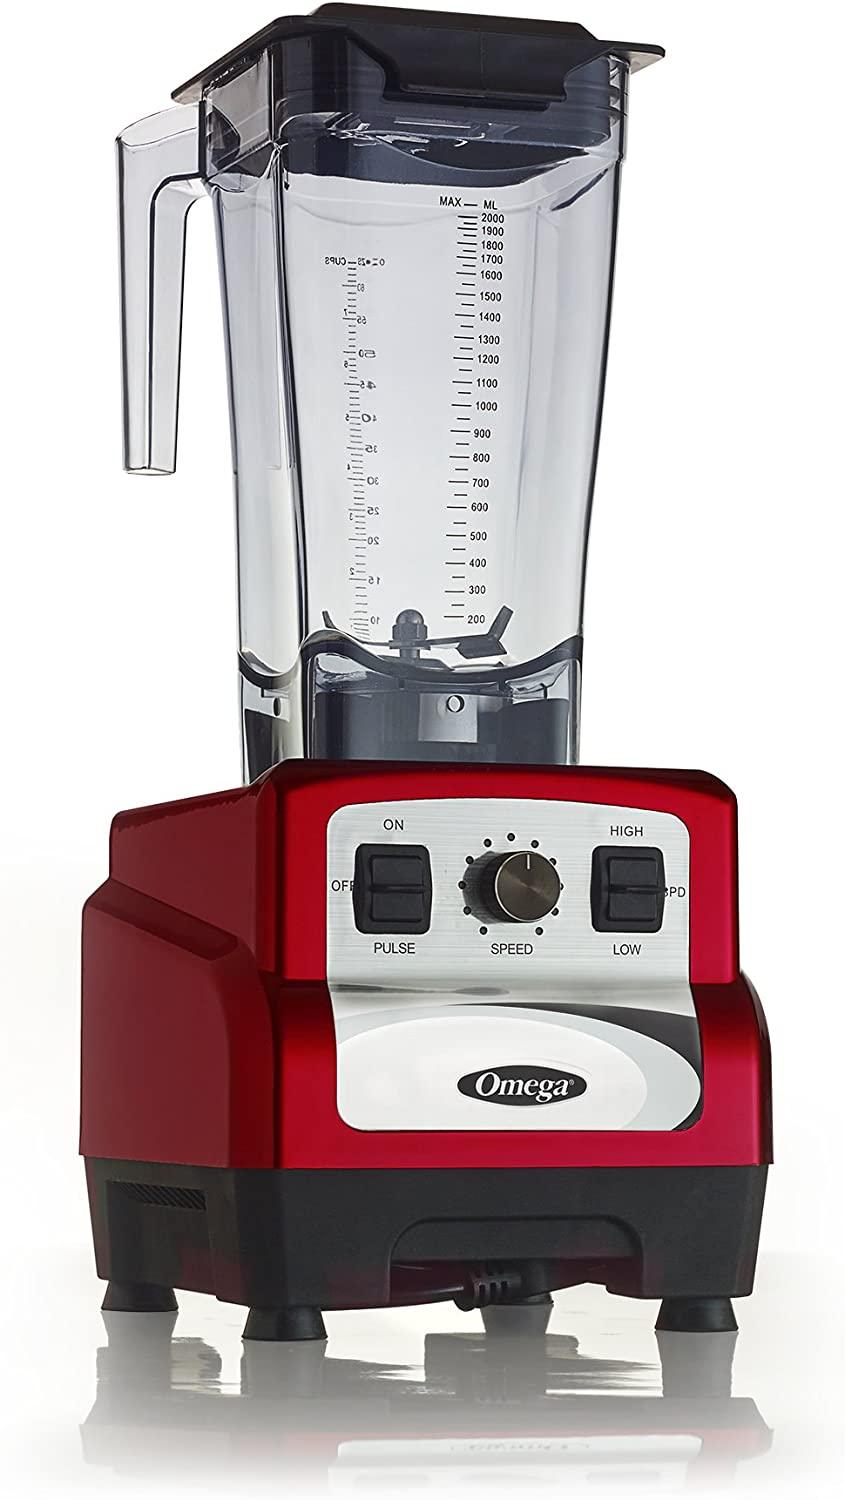 Omega Juicers 3 Peak HP Blender, 64 oz, Red